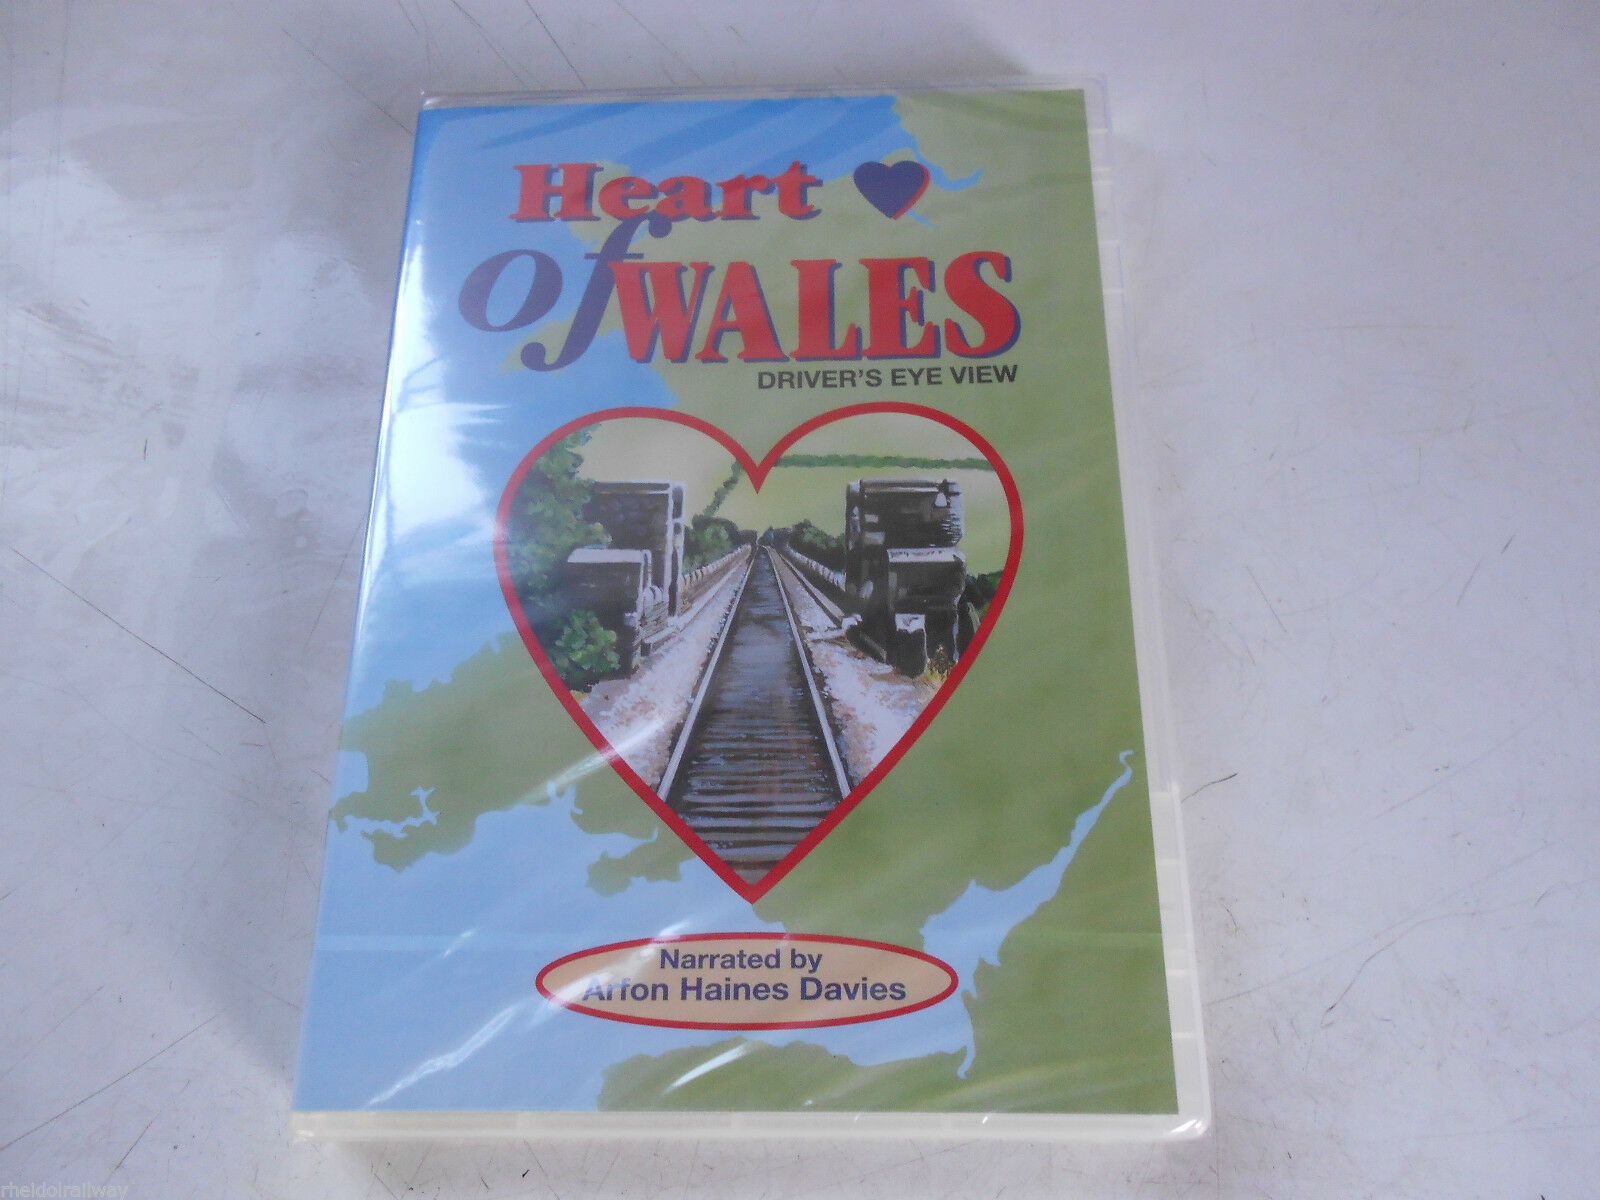 Shrewsbury, Heart Of Wales Driver's Eye View, Narrated by Arfon Haines Davies DVD